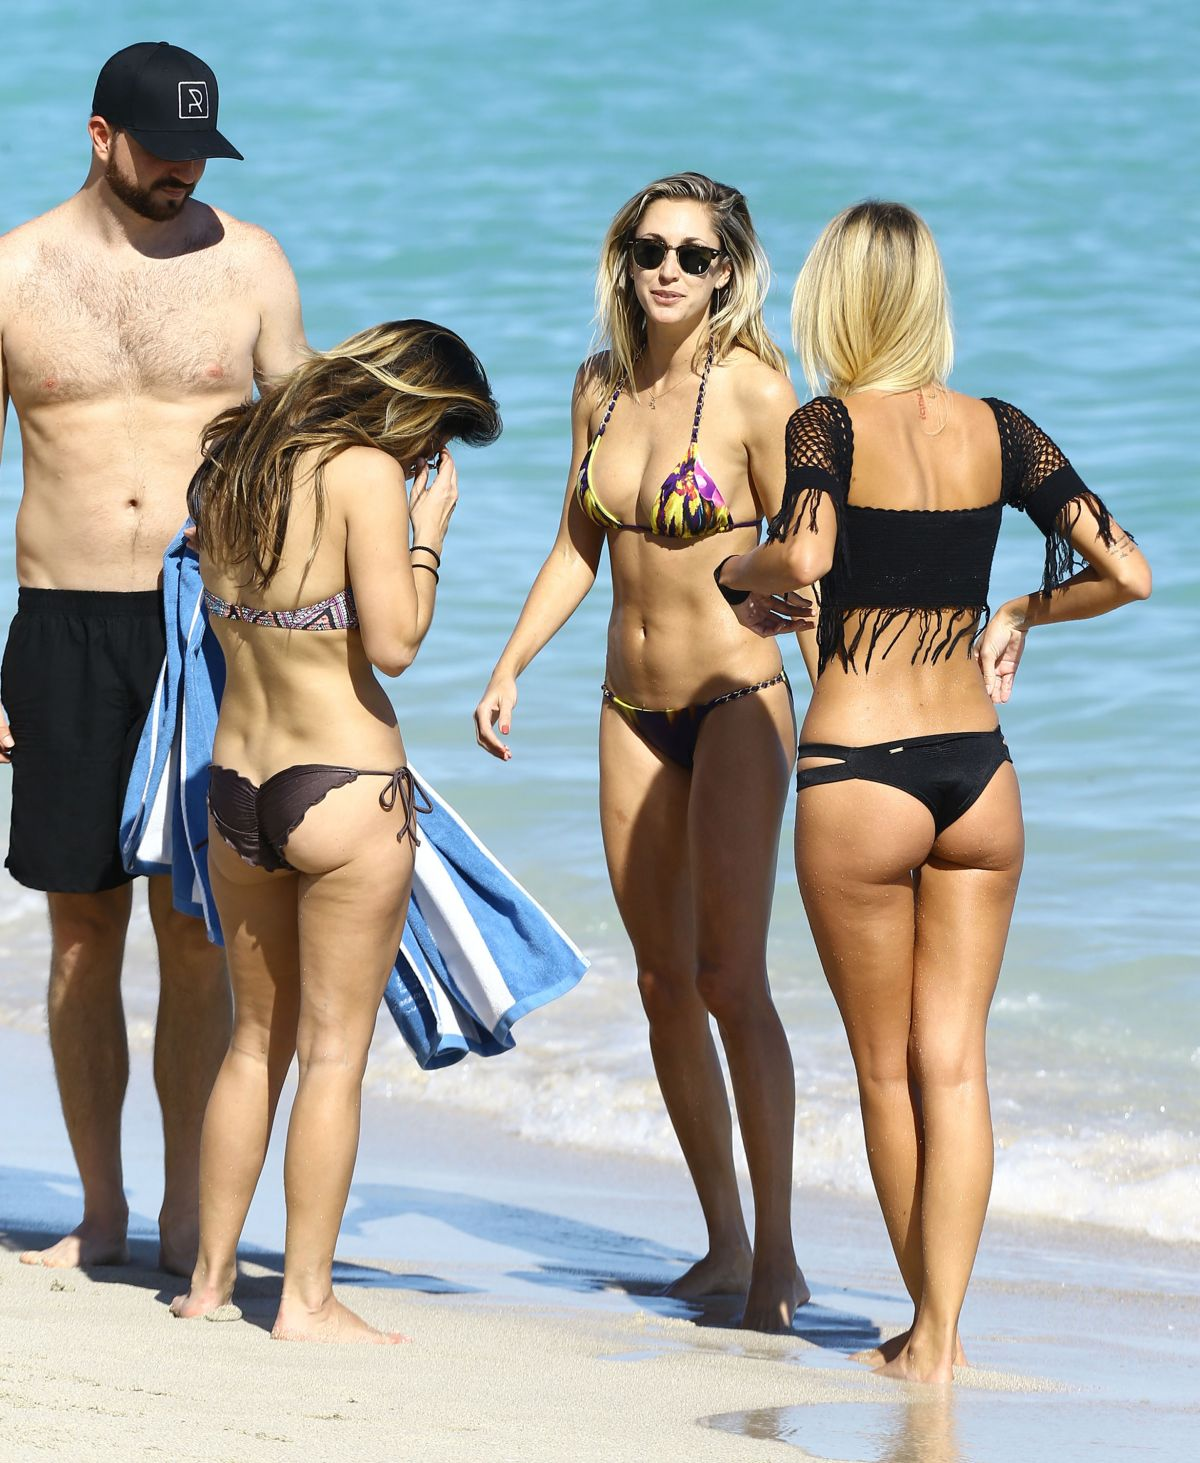 Lauren Hubbard in Black Bikini in Miami Beach Pic 26 of 35